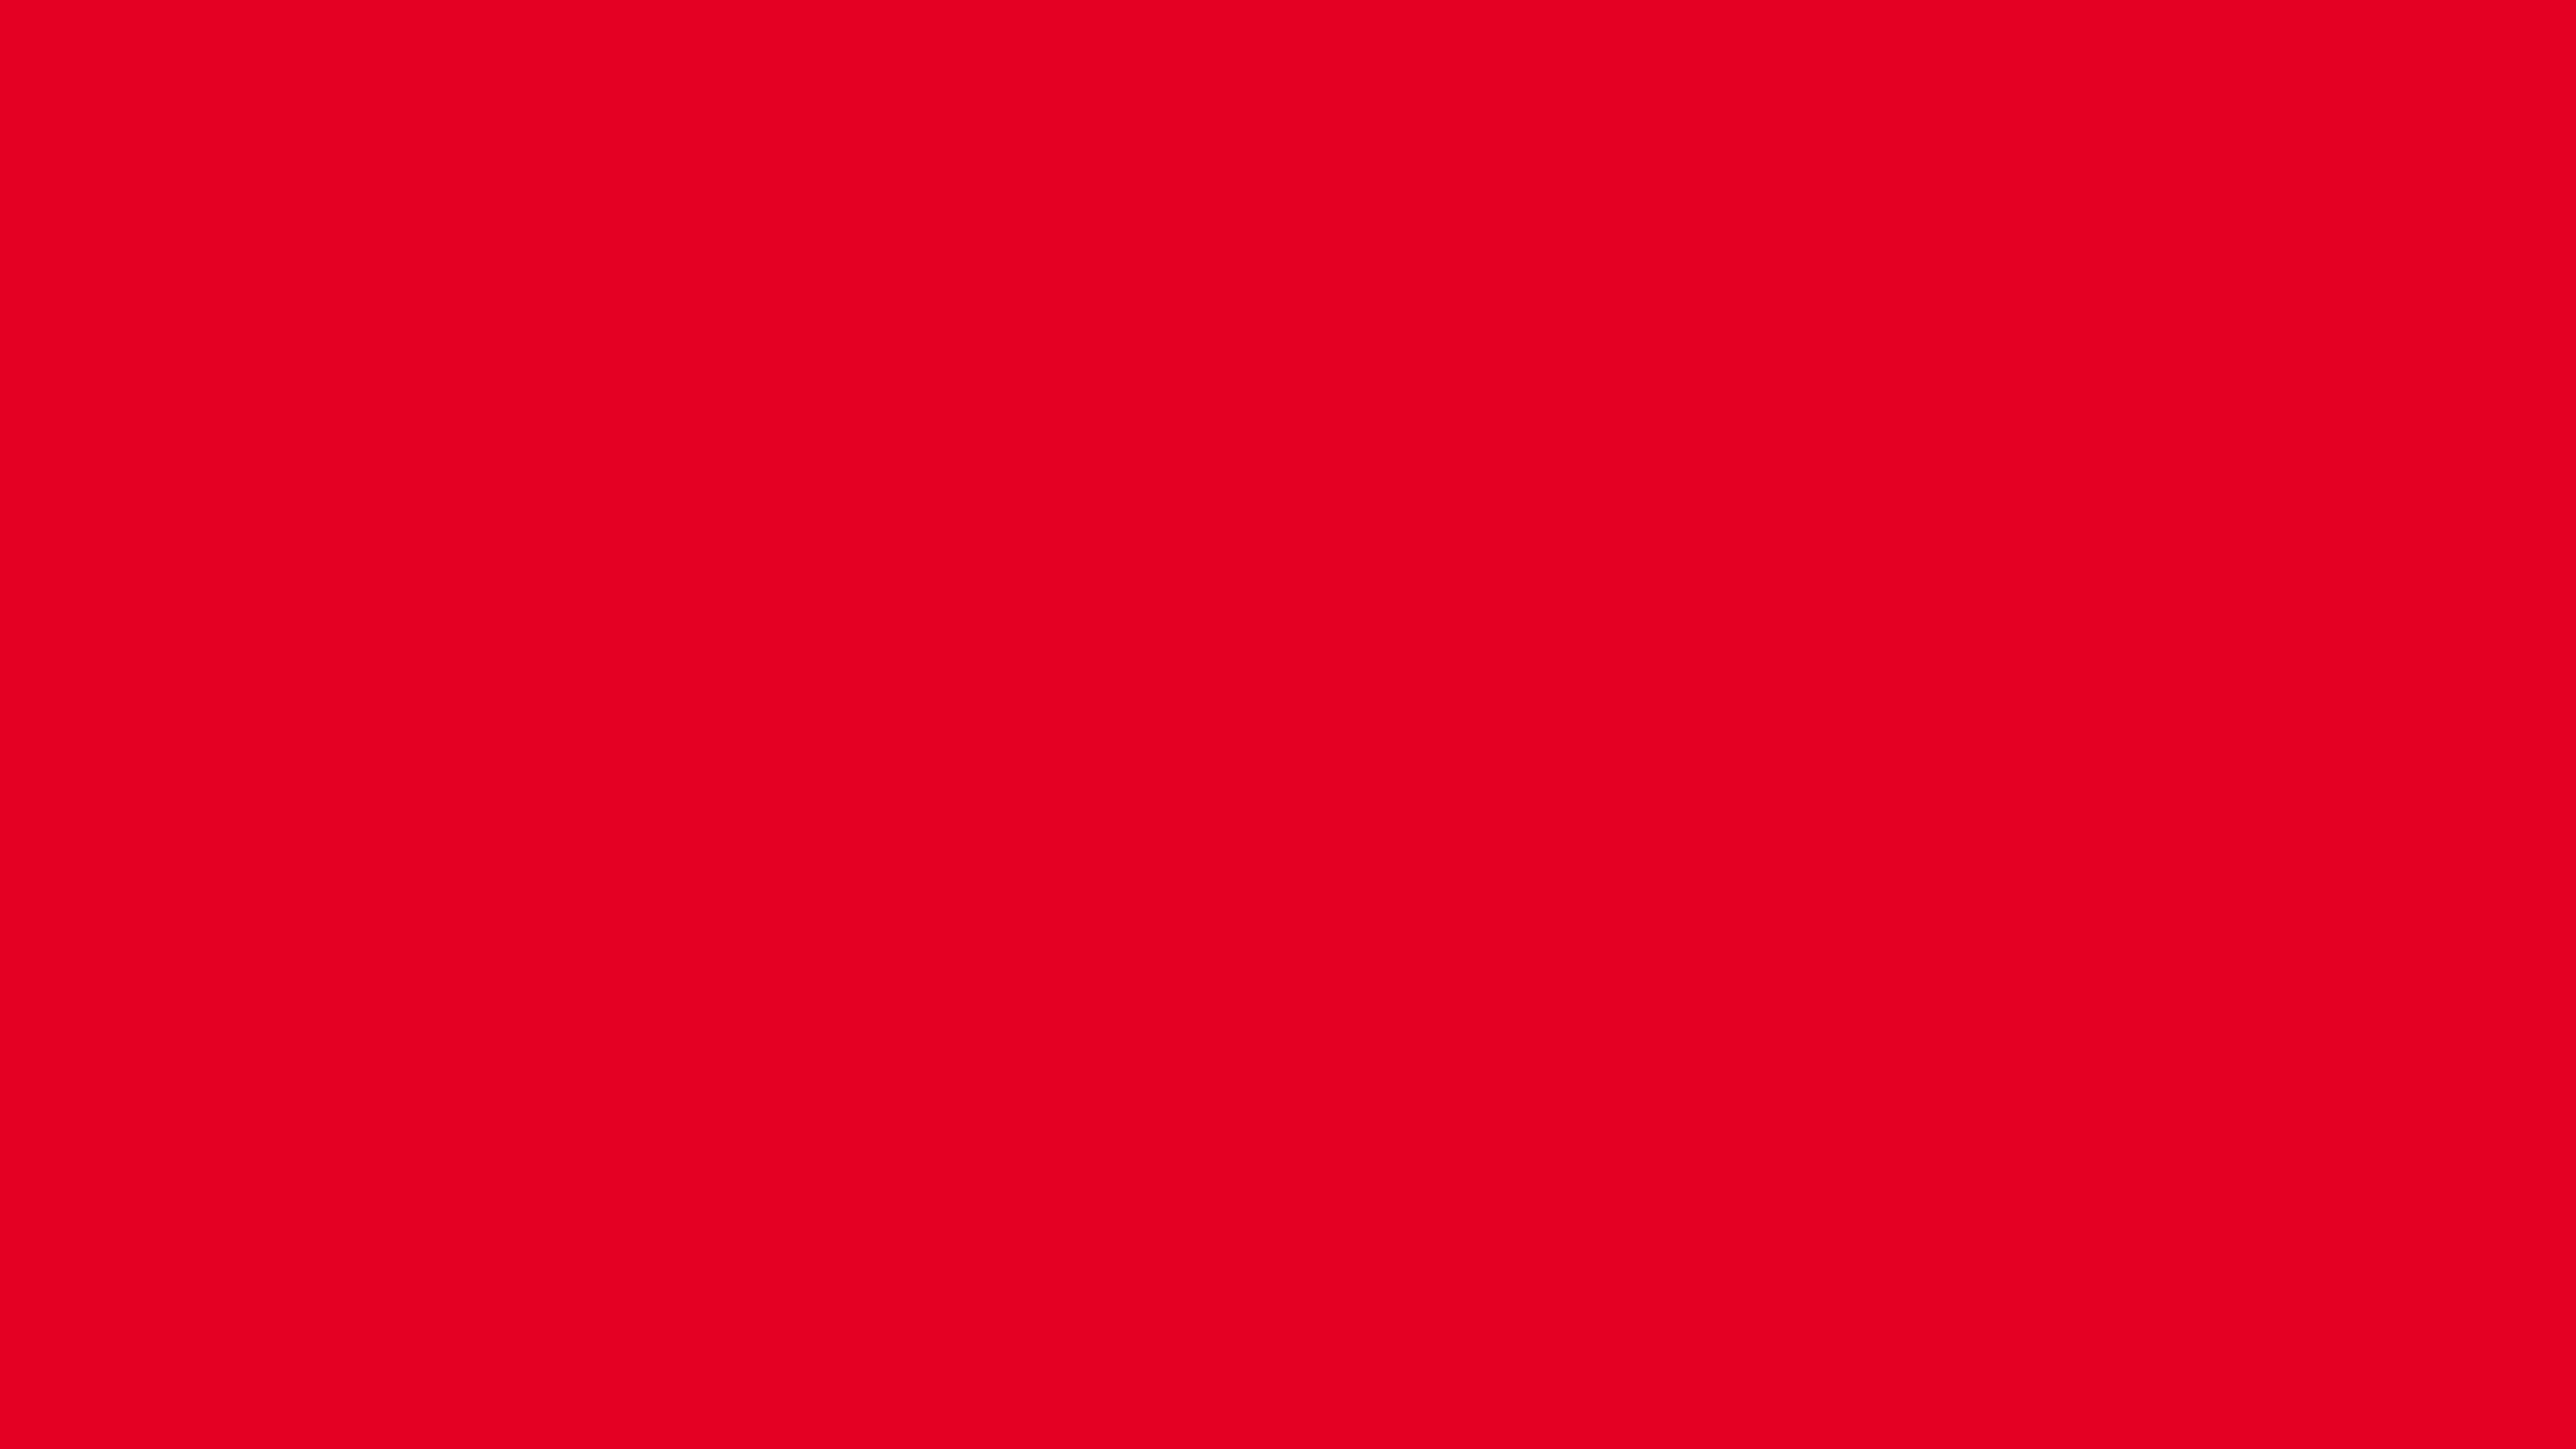 5120x2880 Cadmium Red Solid Color Background